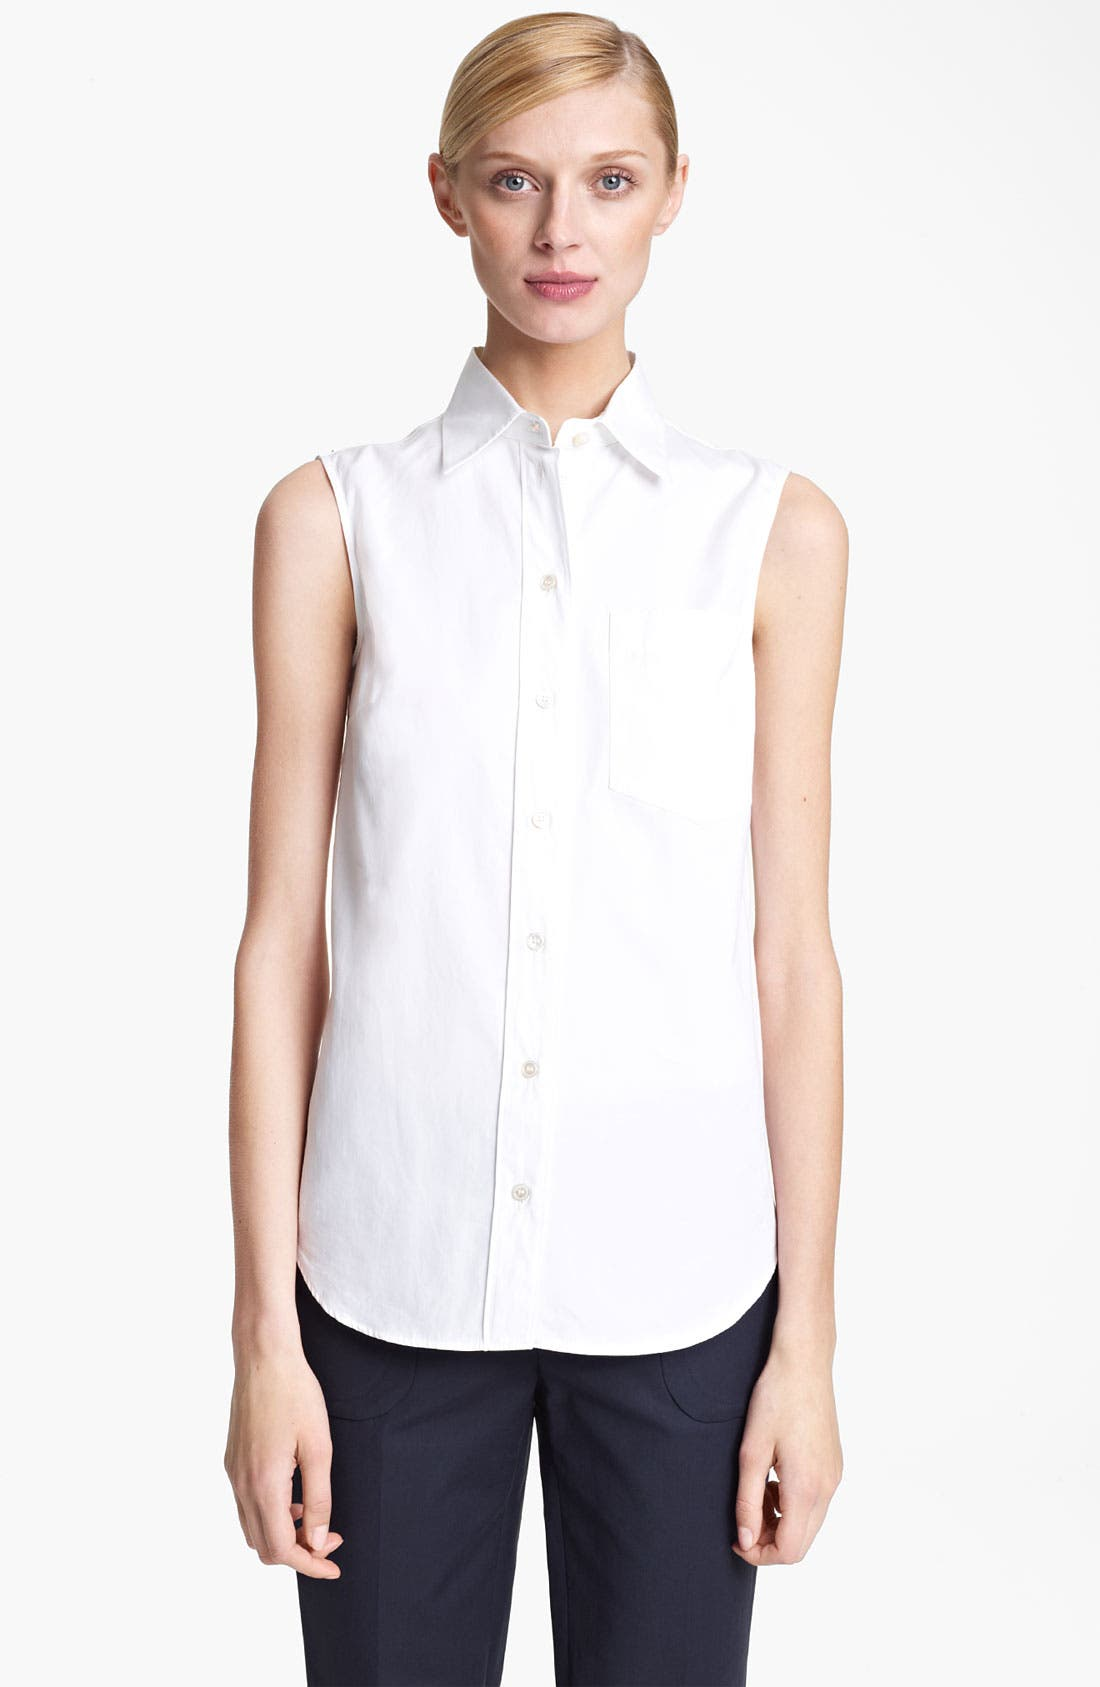 Alternate Image 1 Selected - Michael Kors Sleeveless Poplin Top